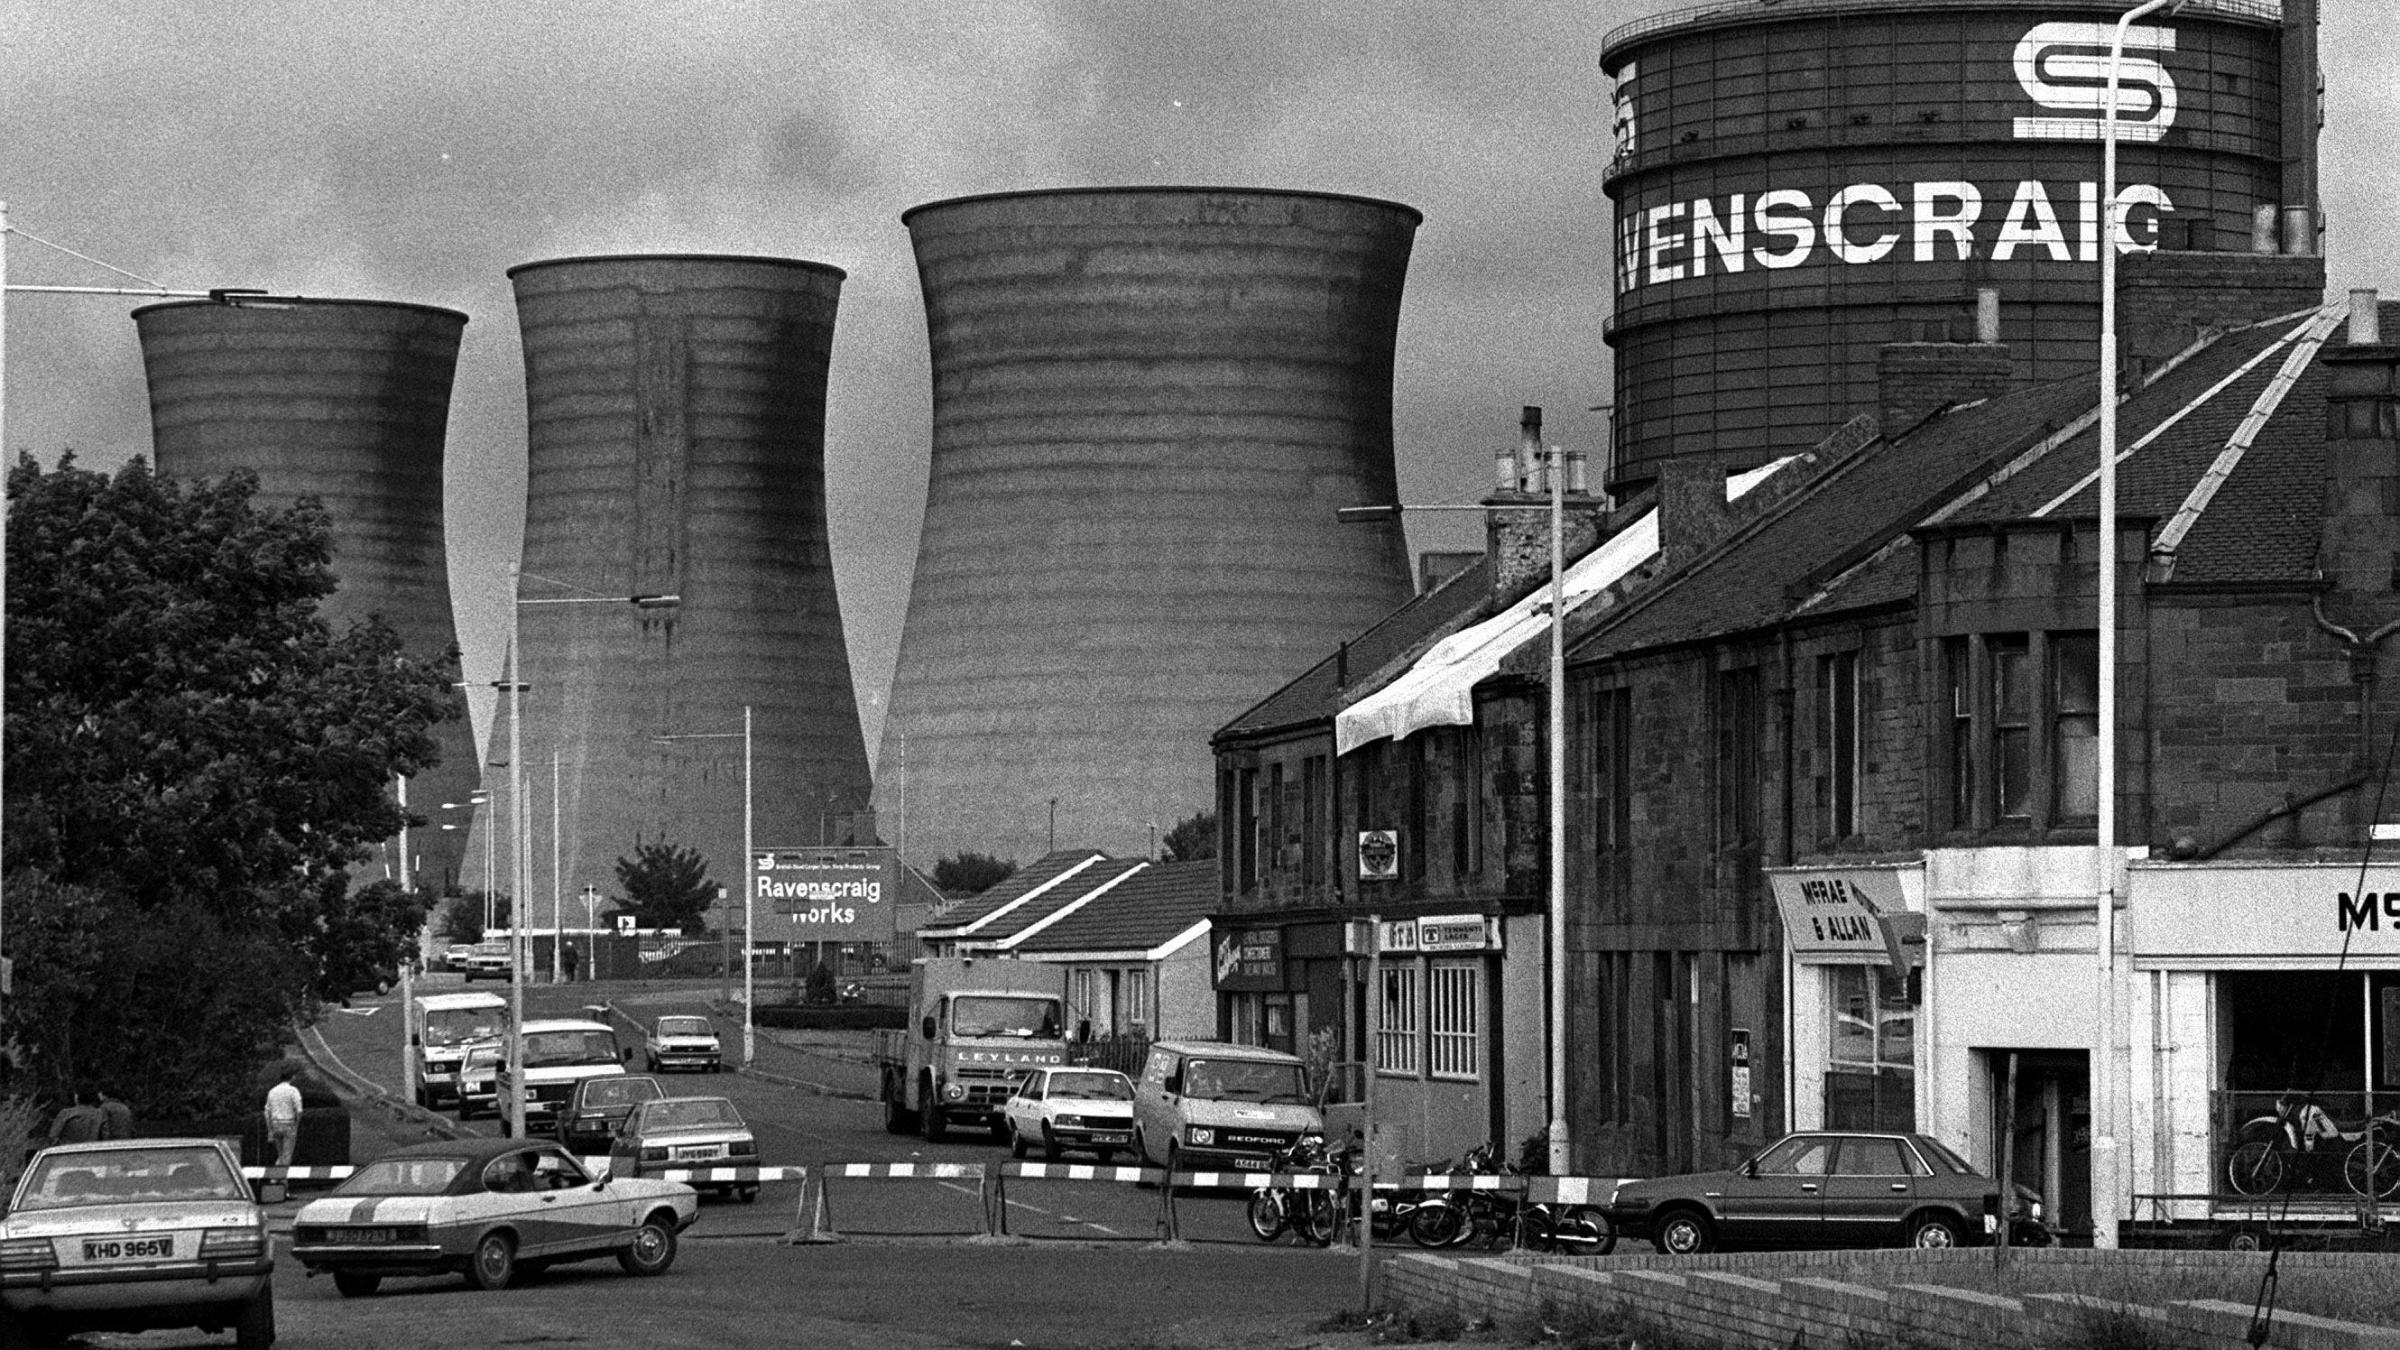 Eight councils allocate £66m for redevelopment of former Ravenscraig steelworks site